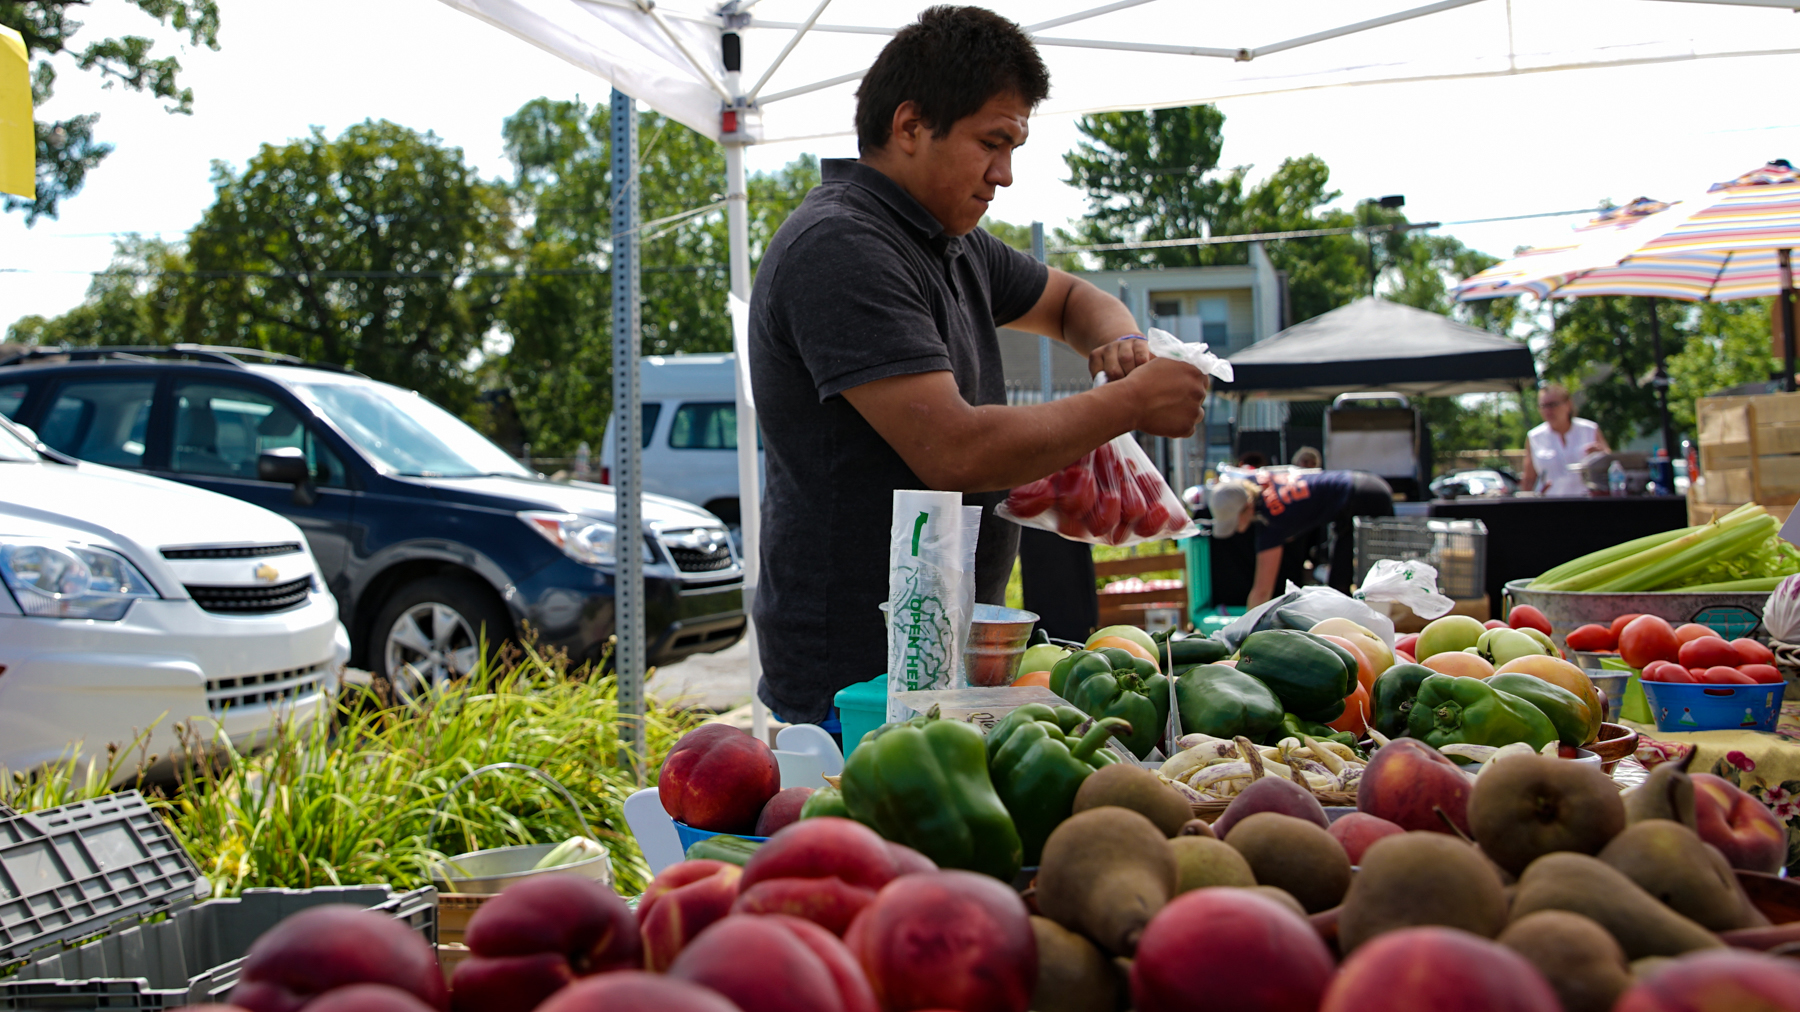 Luis F. Garcia sells locally-grown produce at the weekly summertime mercado at the Community Health and Social Services Center, known as CHASS. The produce was grown at Diamante Gardens, only a few blocks from CHASS in Detroit. The health center has become a hub of community life for area residents. (Noah Smith/ Direct Relief)